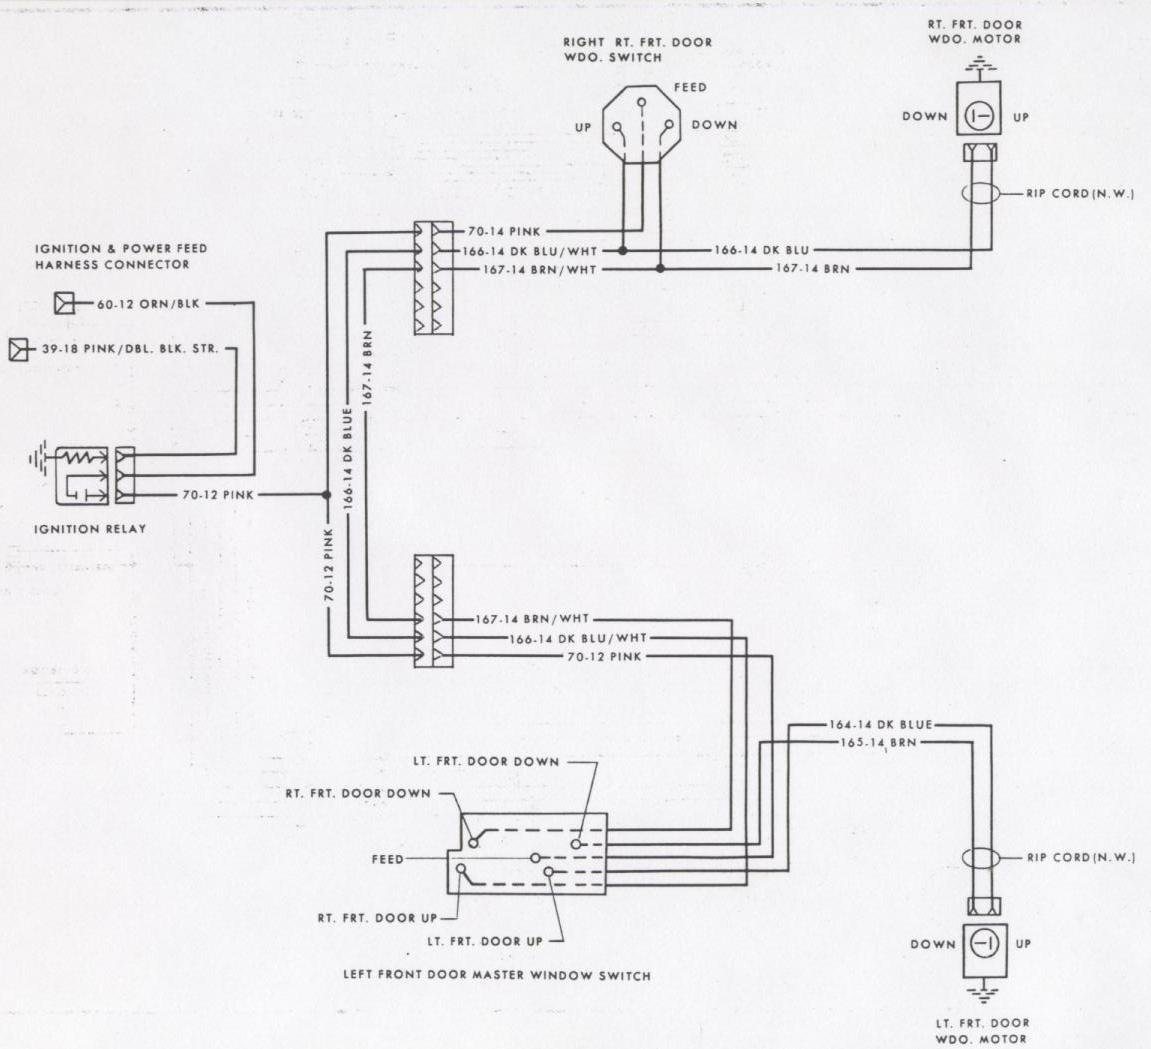 78w-pw Affinity Telecaster Wiring Diagram on